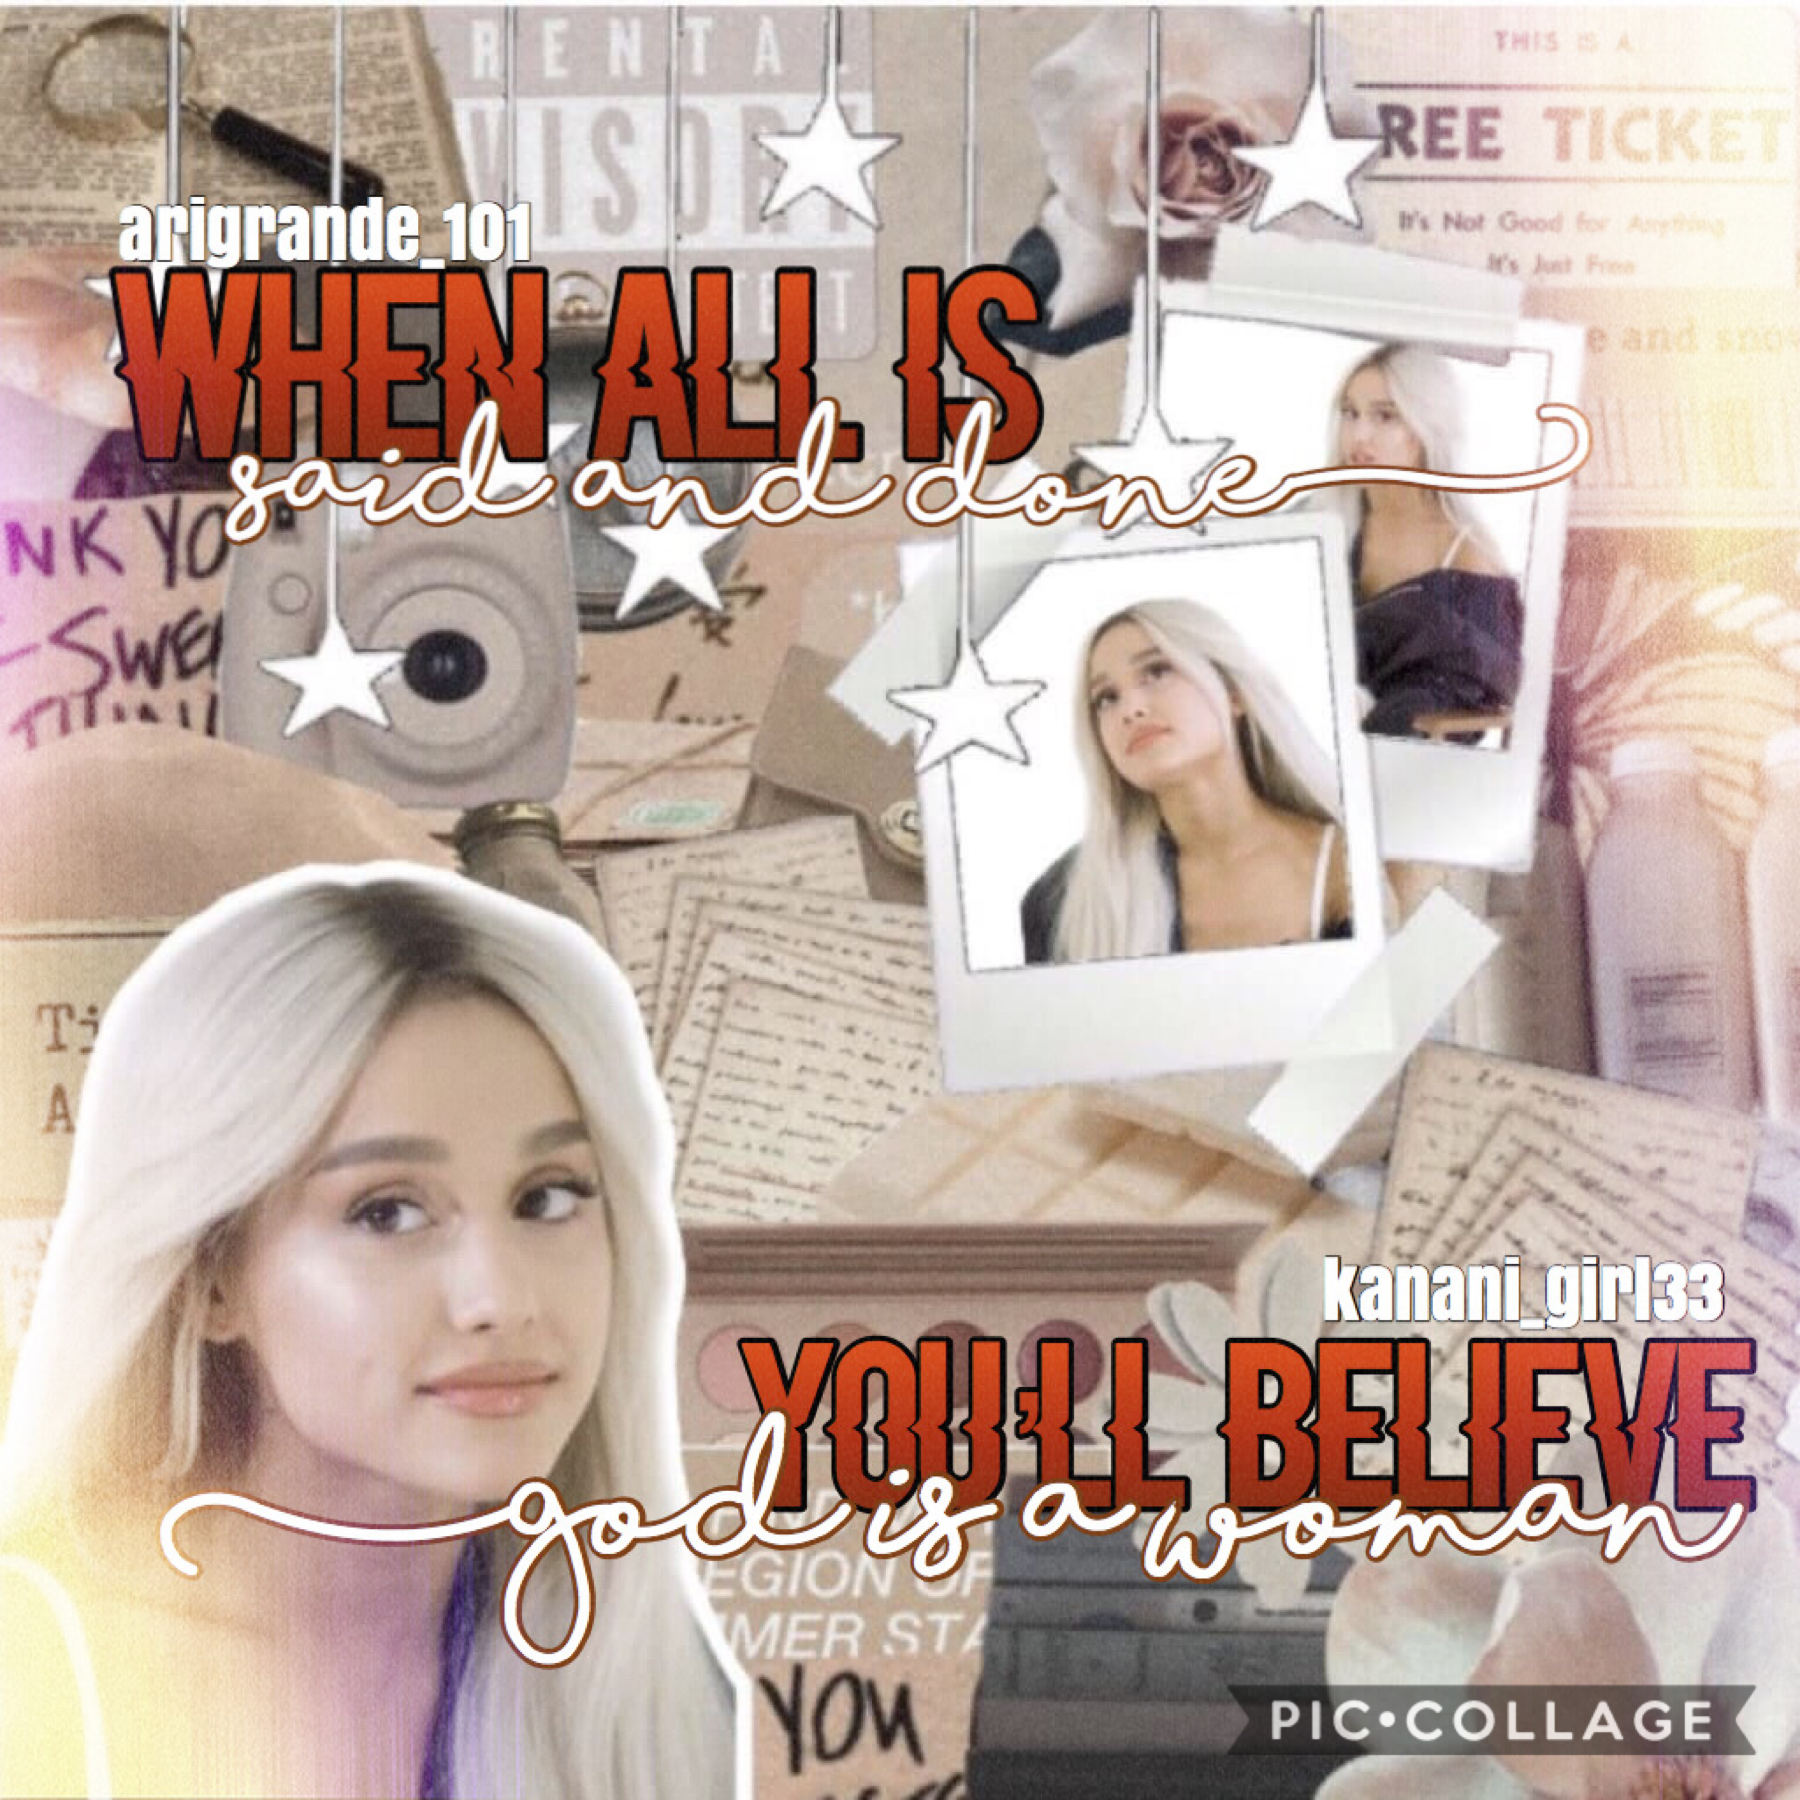 ☆12/31/19☆ Collab with ♥️♥️♥️ Arigrande_101!! She is super nice and I love working with her!! 💕 She did the wonderful background and I did the text!! 😇 Happy New Year!! Qotd: what's your New Year's Resolution? 🥳🎉